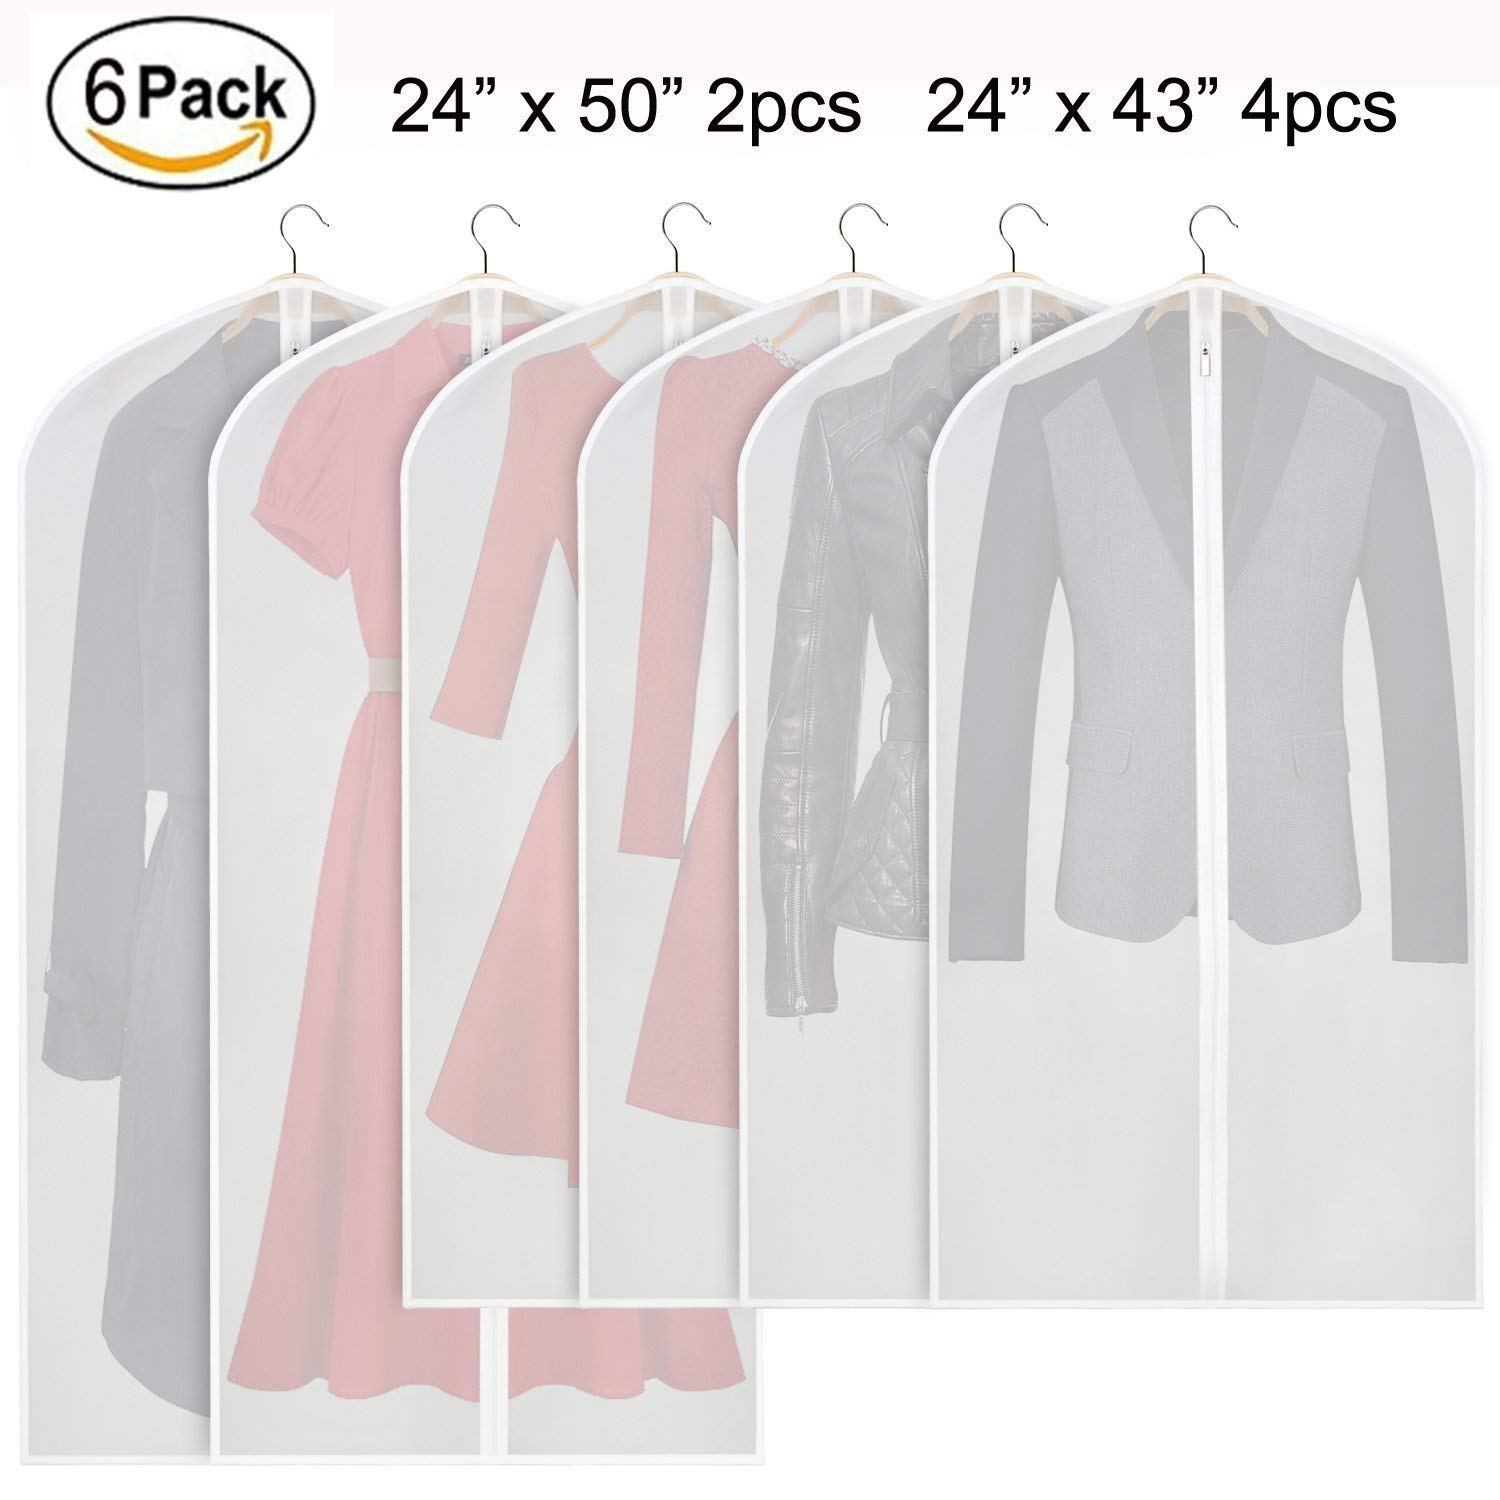 Garment Bag Lightweight Suit Bags Moth-proof (Set of 6) with Study Full Zipper for Closet Storage and Travel, Clear White